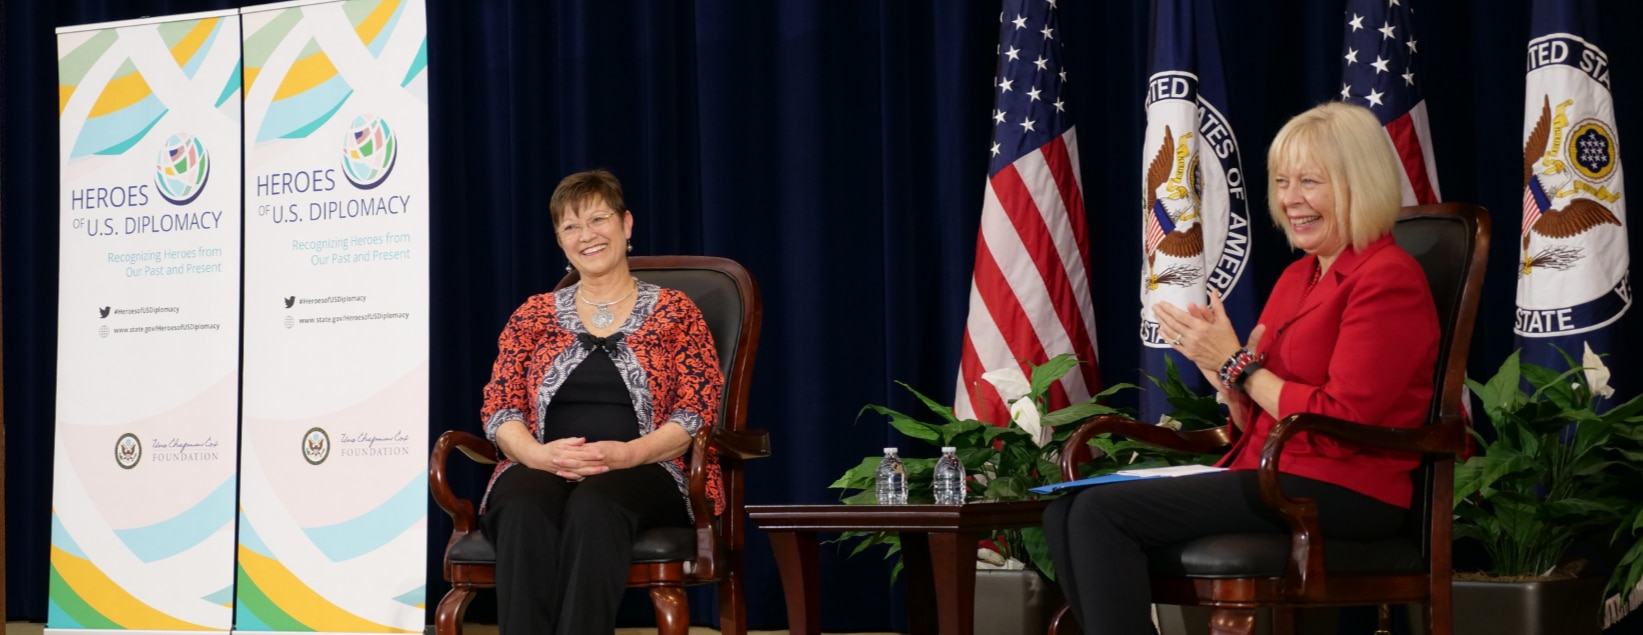 Elizabeth Slater and Director General Carol Perez sit in armchairs on the stage for the launch of the Heroes of U.S. Diplomacy initiative.